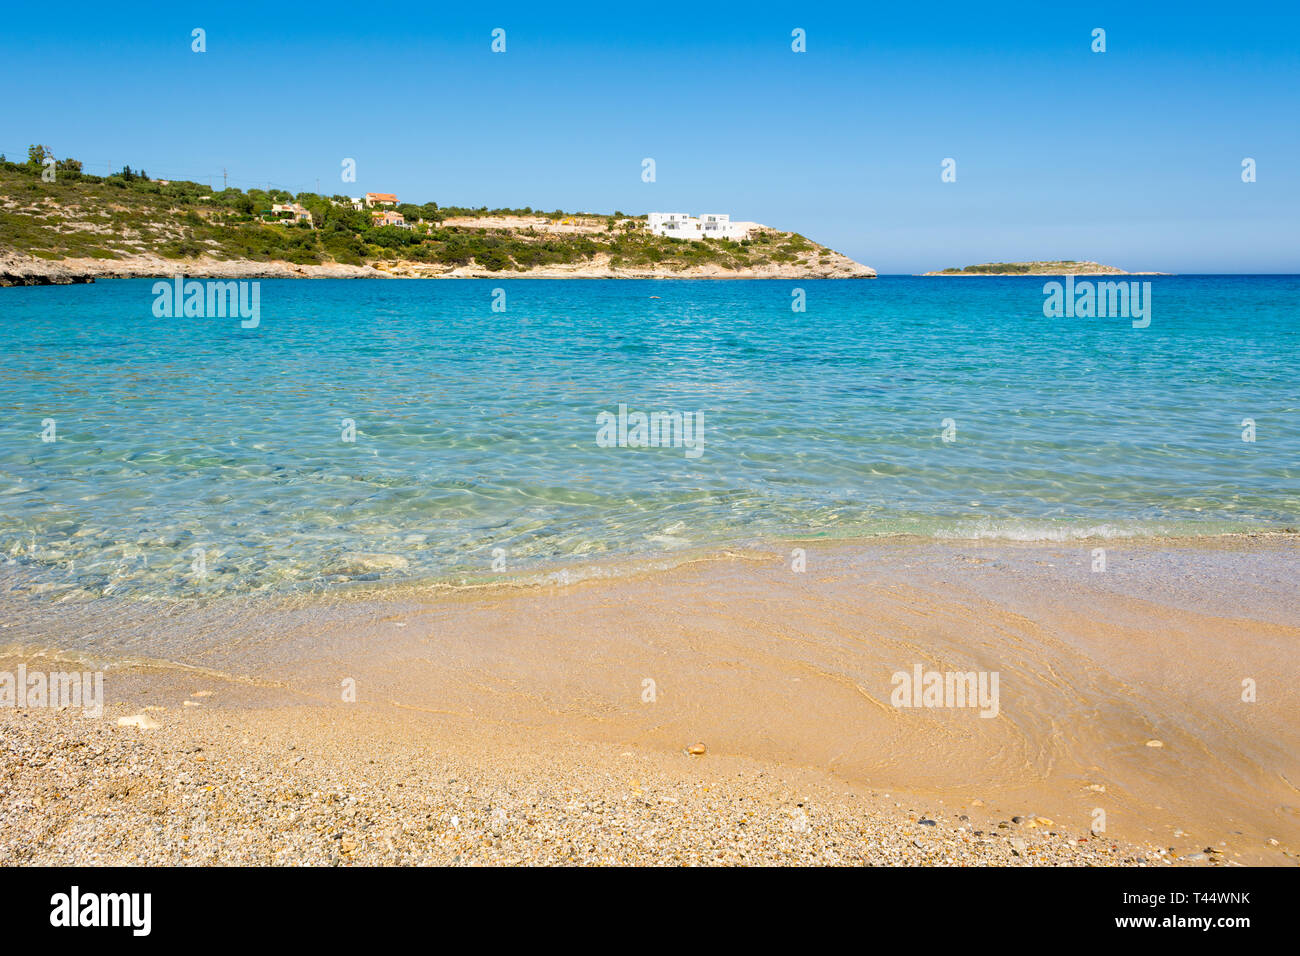 Marathi beach with fine sand and shallow calm water. West Crete, Greece - Stock Image